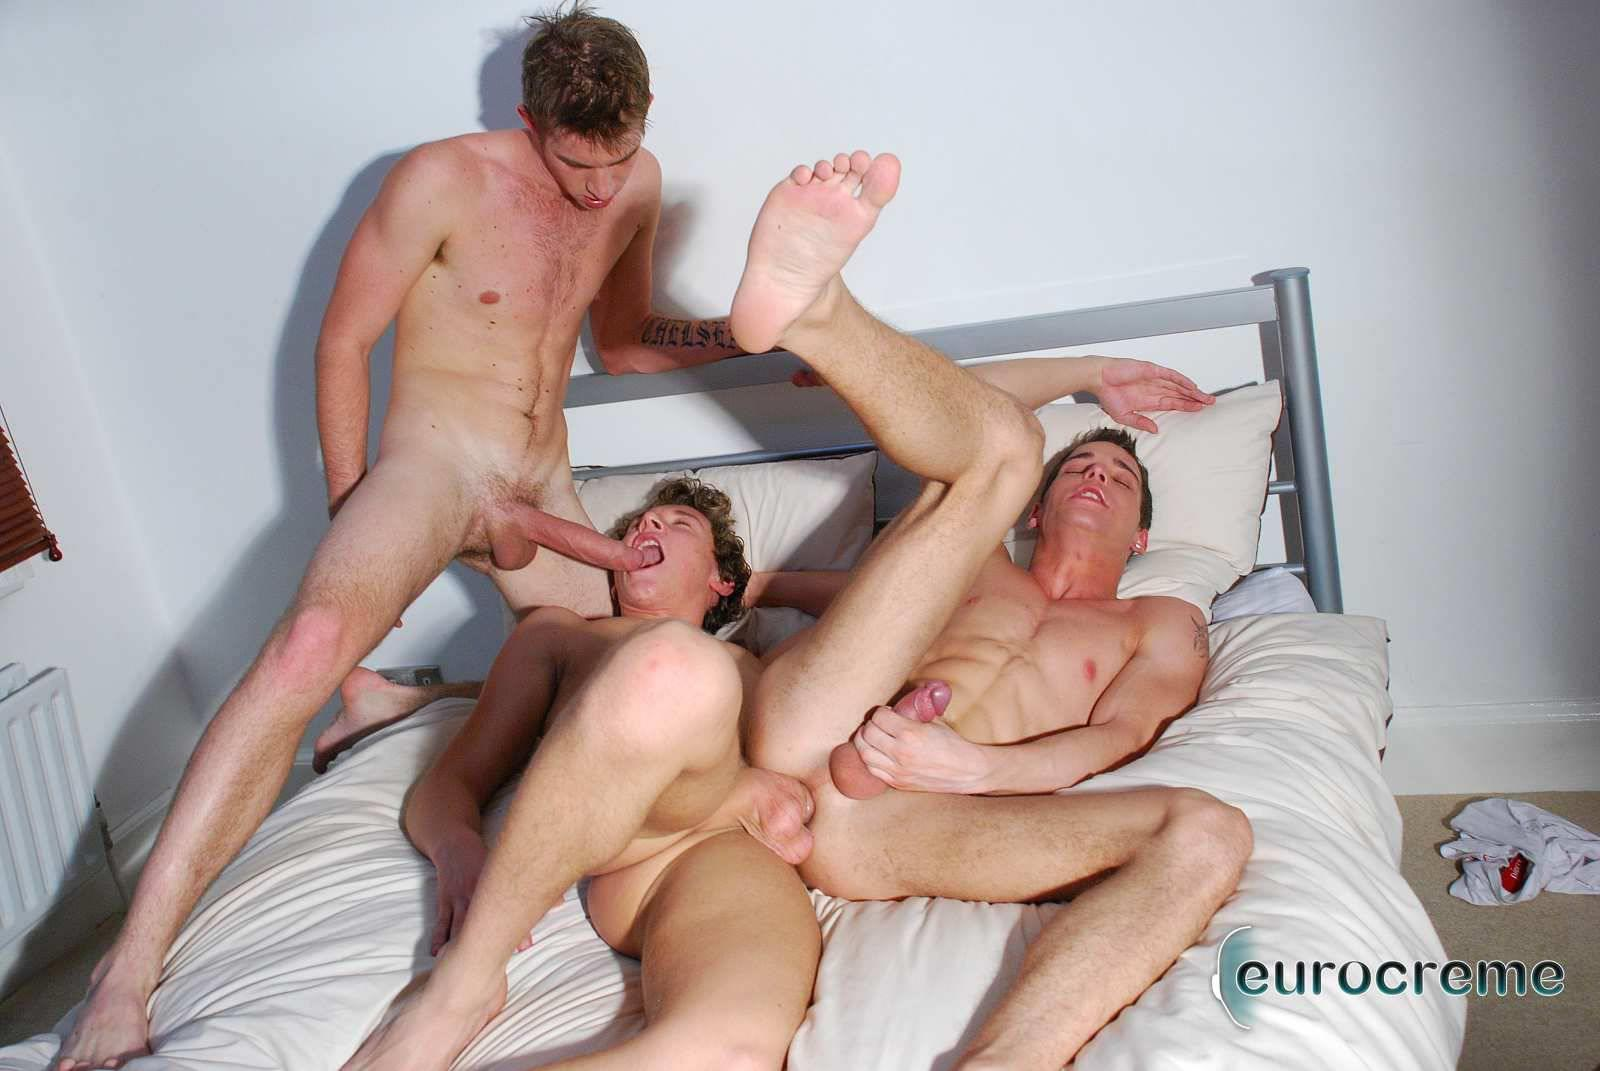 Eurocreme-Matt-Hughes-and-Alex-Stevens-and-Philipe-Delvaux-Twinks-Fucking-Amateur-Gay-Porn-16 Matt Hughes Uses His 11-Inch Uncut Cock On Two Tricks